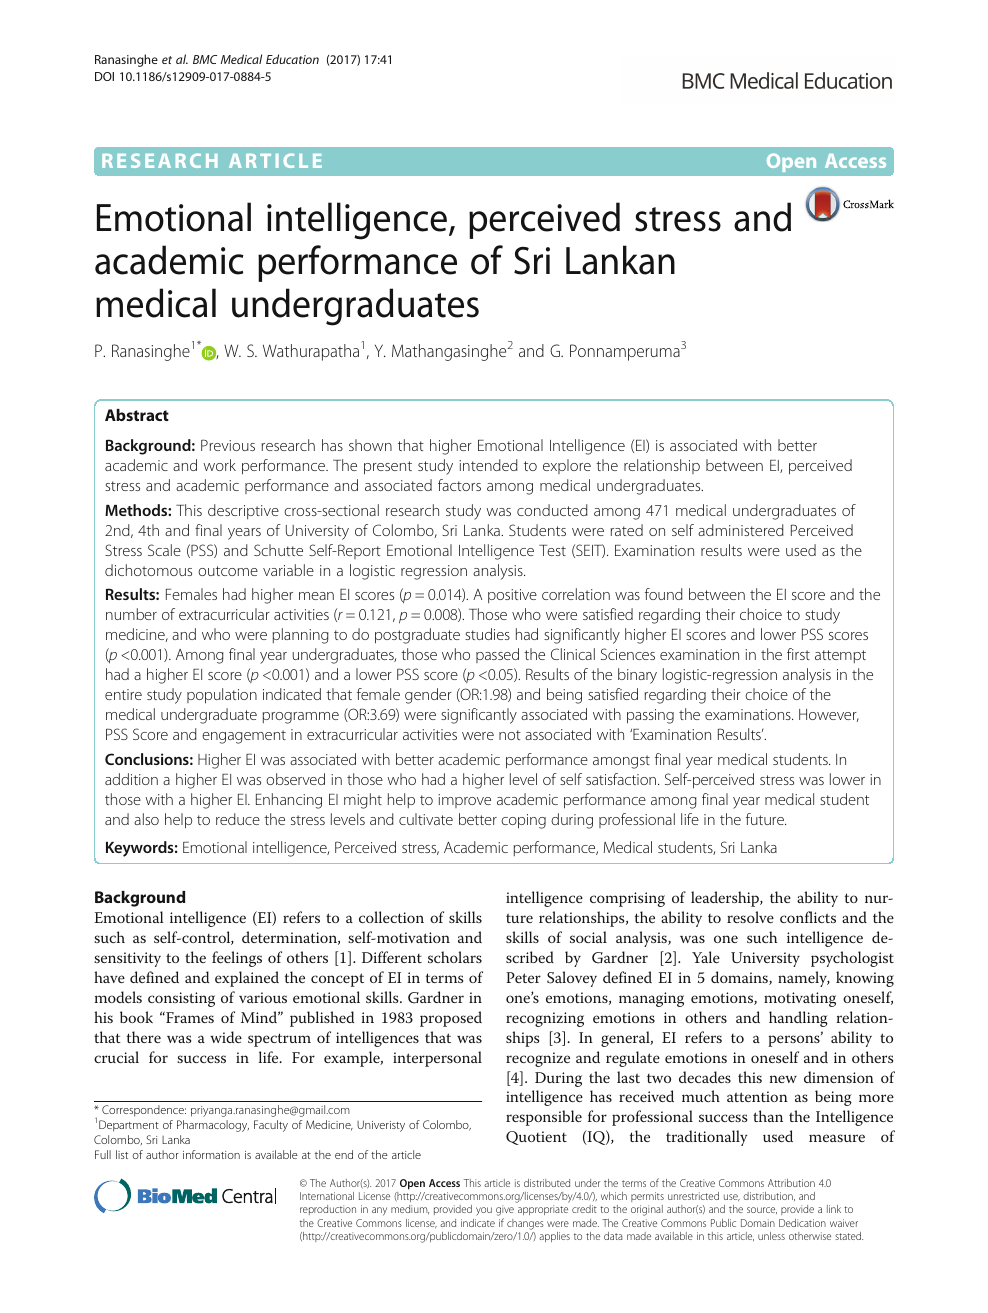 Emotional intelligence, perceived stress and academic performance of